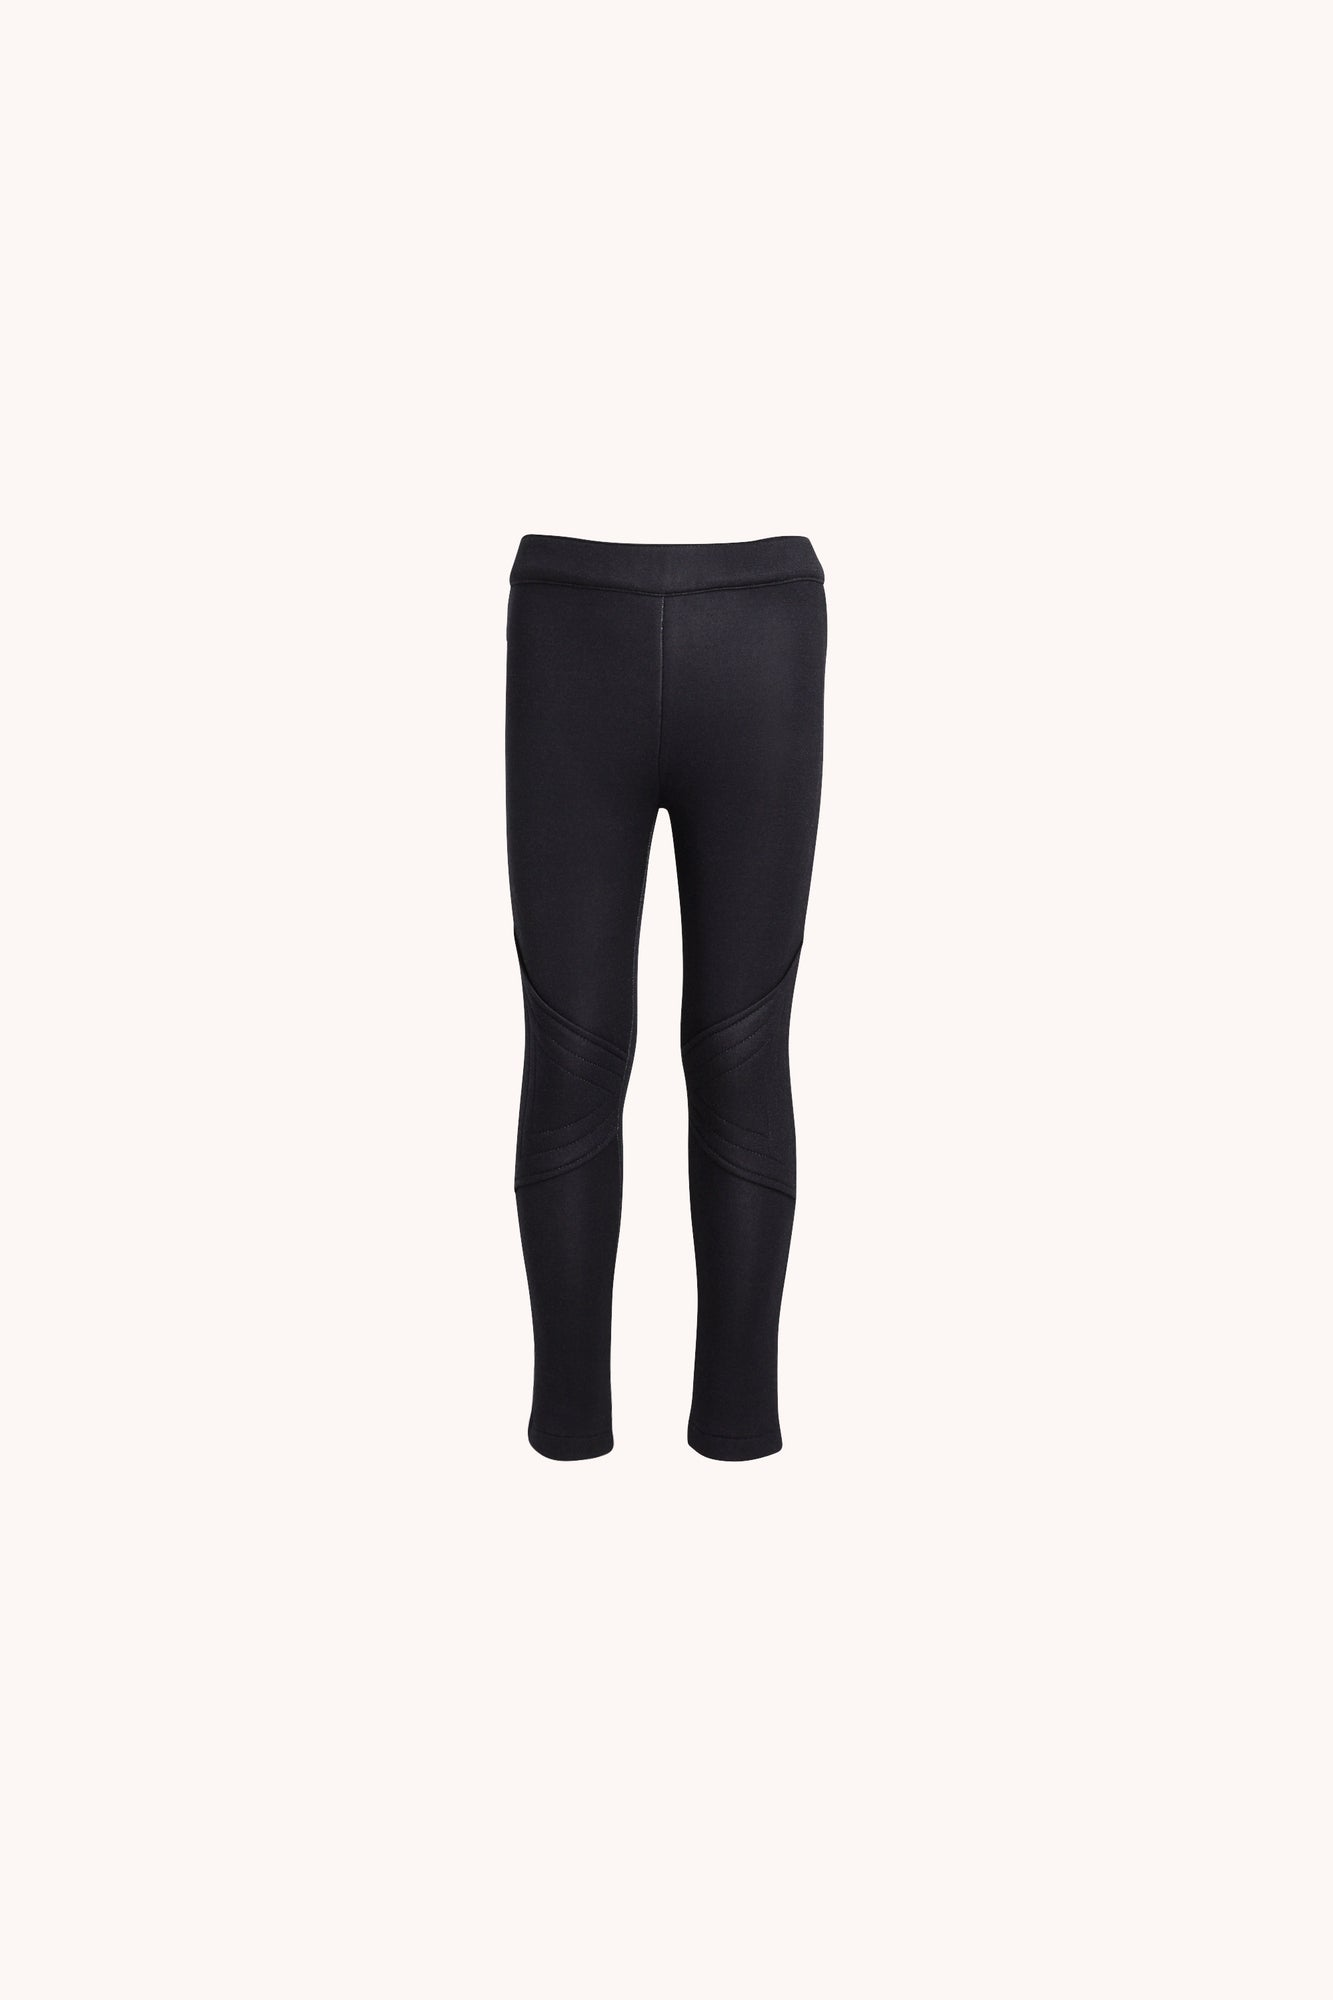 Legging | Solid Black